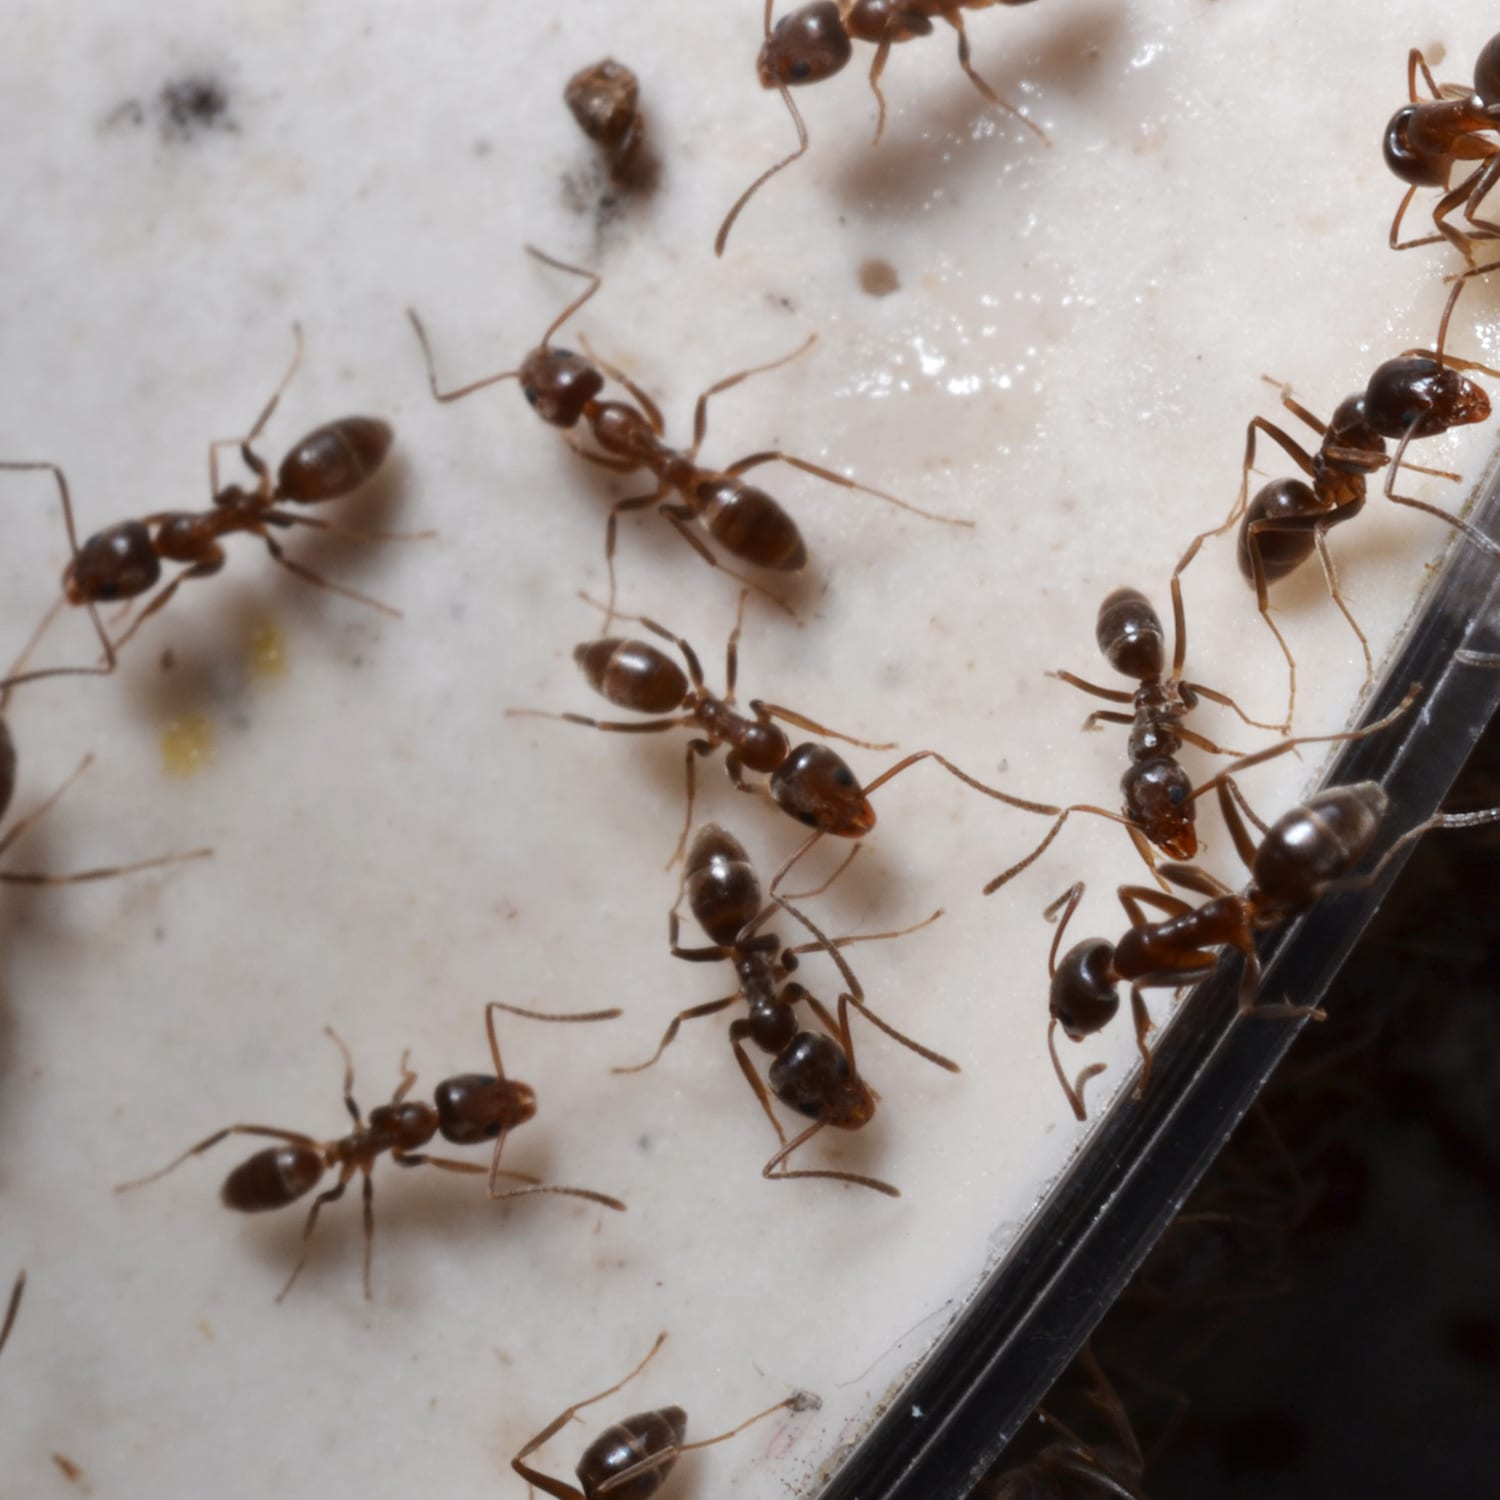 Learn More About Argentine Ants